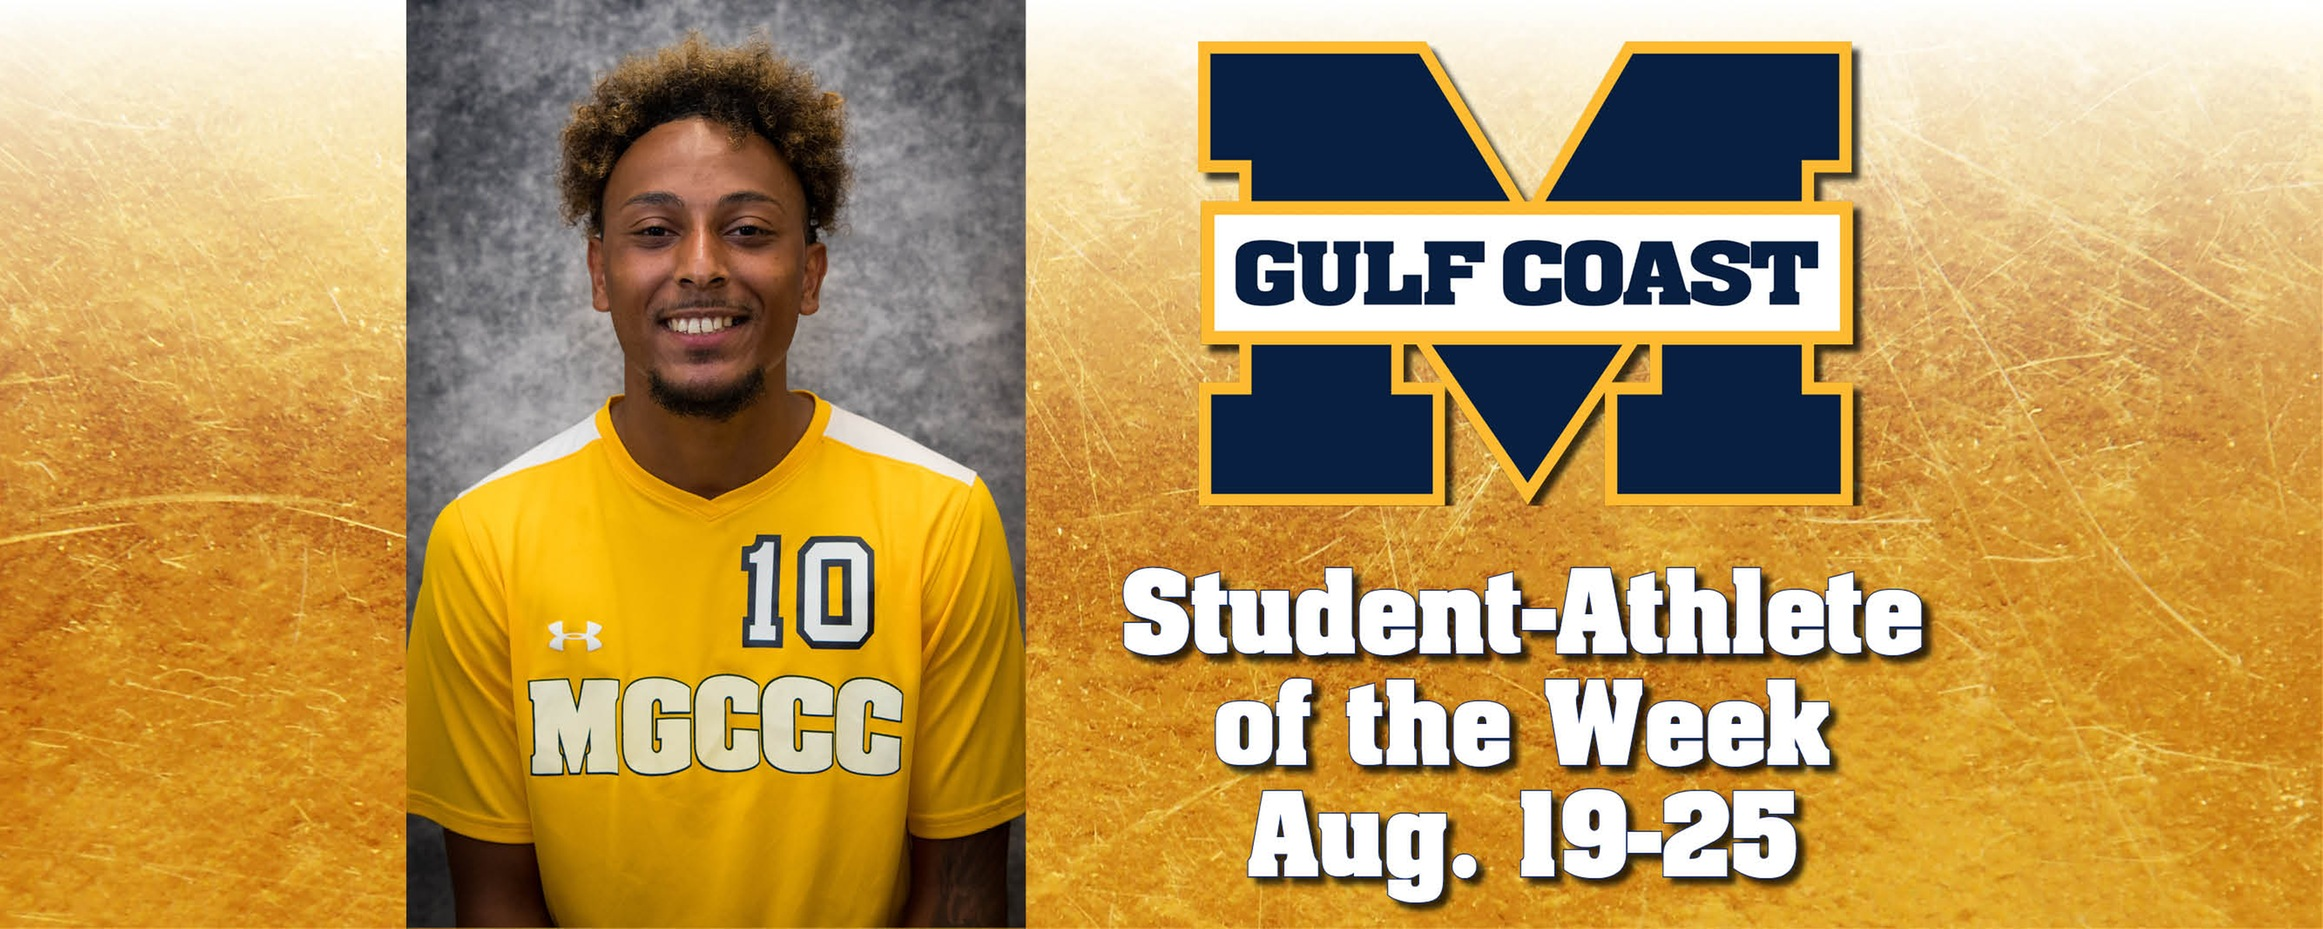 Redmond wins MGCCC Student-Athlete of the Week